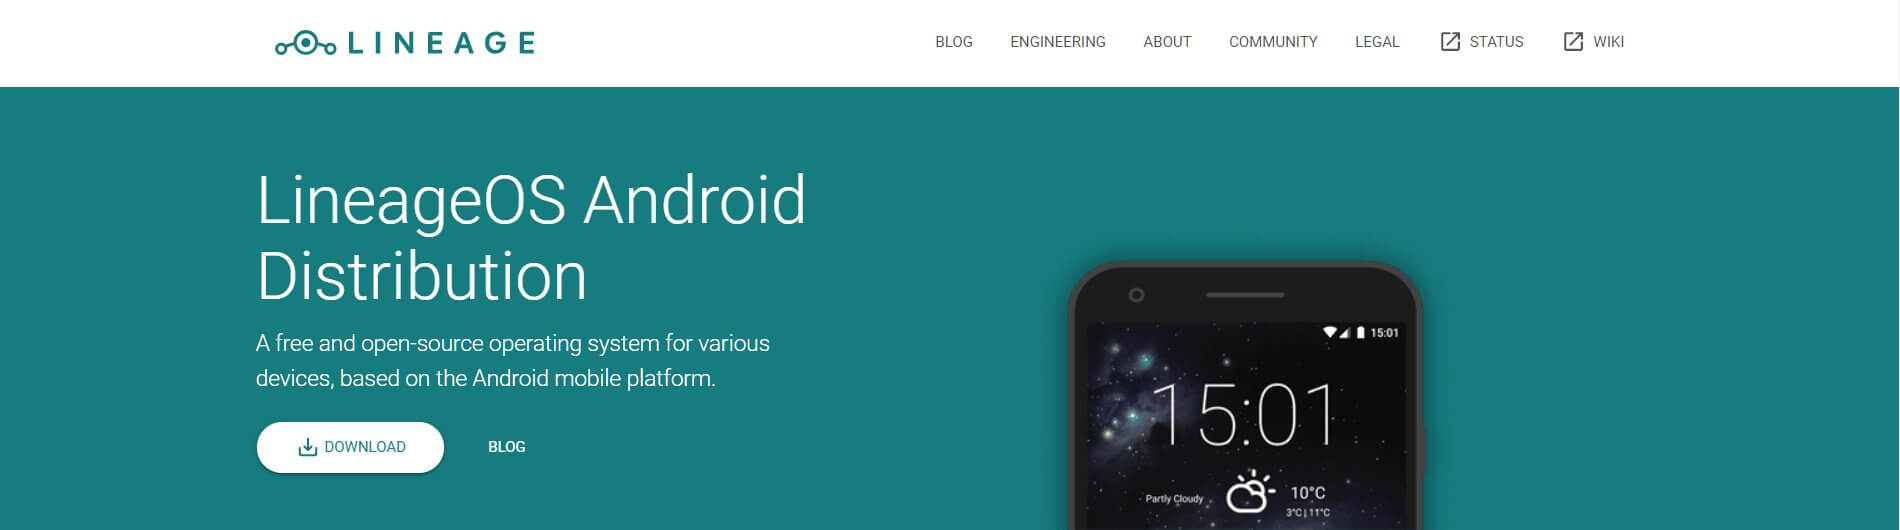 Замена Android - LineageOS